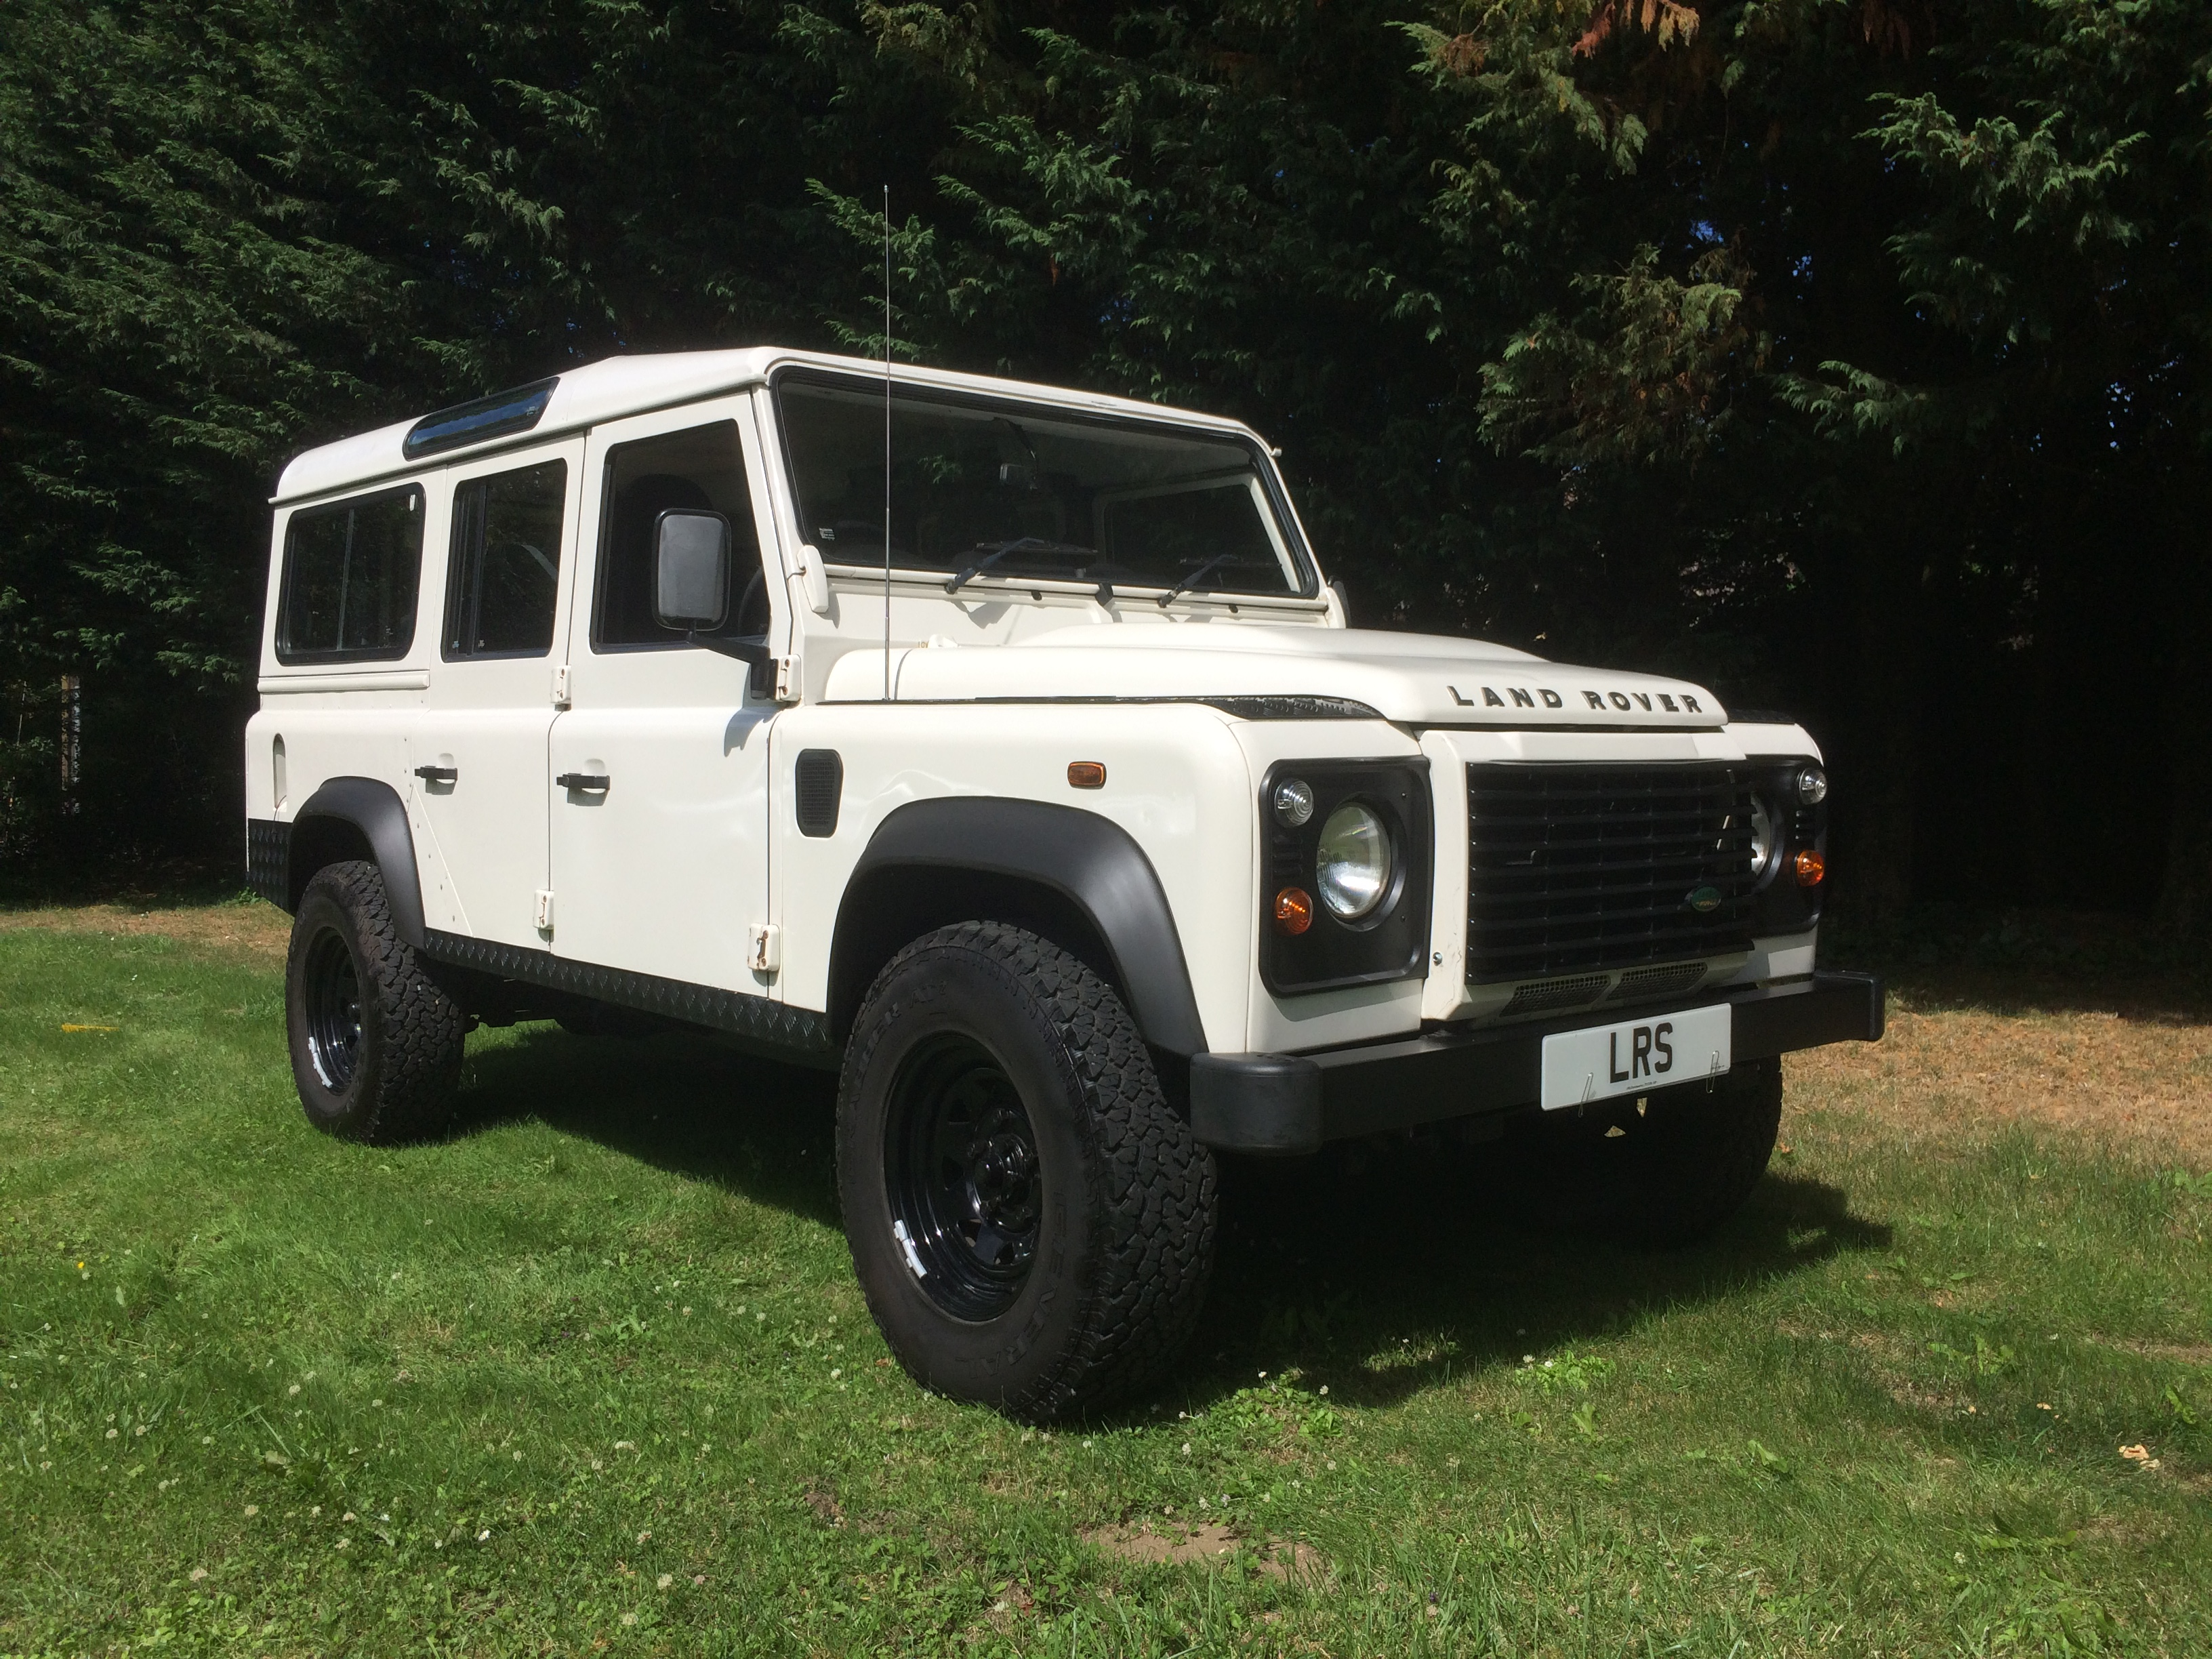 sale out landrover convertible defender want to landrovers defenders door do marlin find what we blue know refurbished here can for you land rover the more